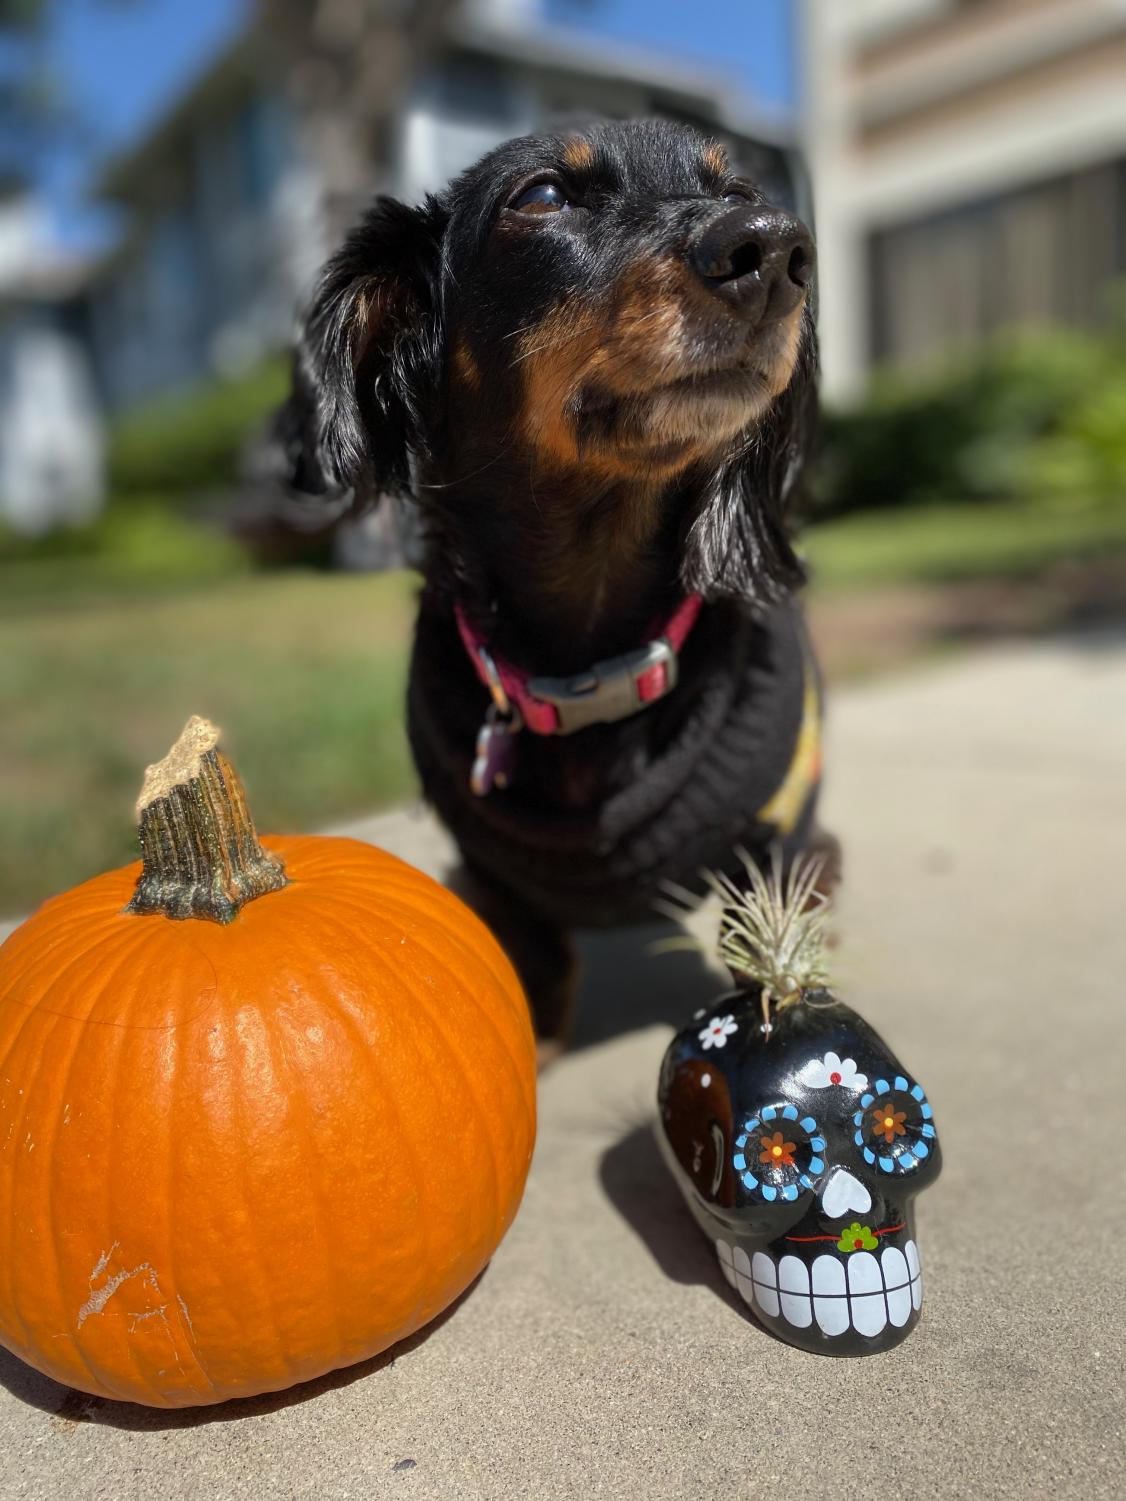 Sadie+is+a+miniature+dachshund.+She+is+an+uncommon+mix+between+a+long+and+short+hair+doxie.+In+November%2C+Sadie+will+be+turning+10+so+be+sure+to+wish+her+a+yappy+barkday%21+To+see+more+photos+and+updates+on+Sadie%2C+check+out+her+growing+instagram+page%2C++%40dachshund_doxie_chicks.